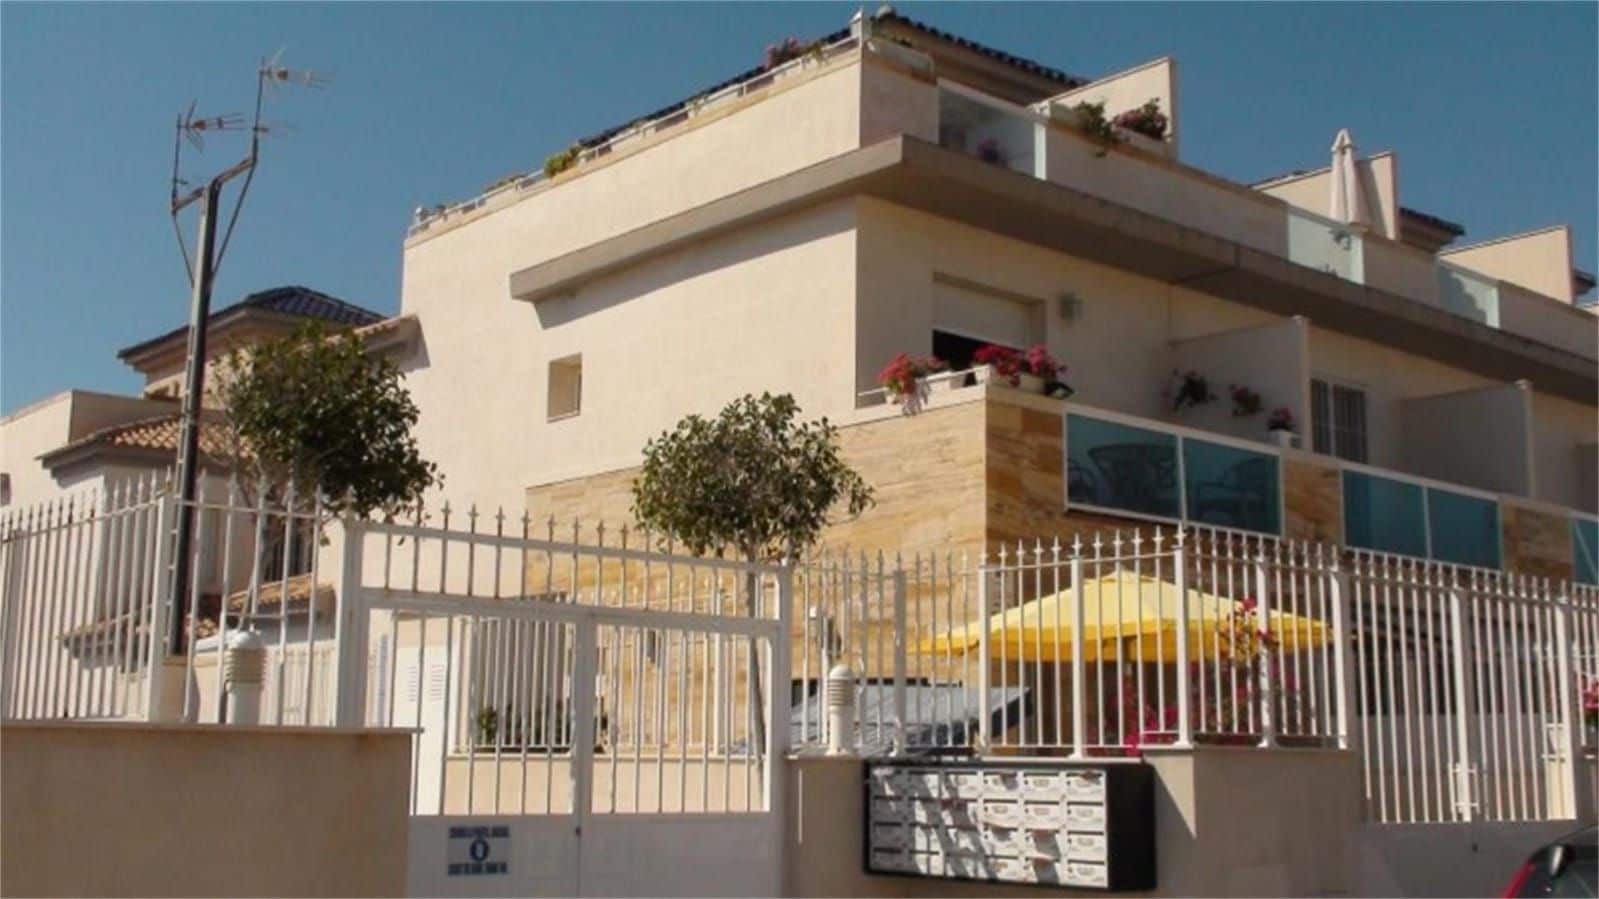 3 bedroom Apartment for sale in San Pedro del Pinatar with pool - € 120,000 (Ref: 5125843)